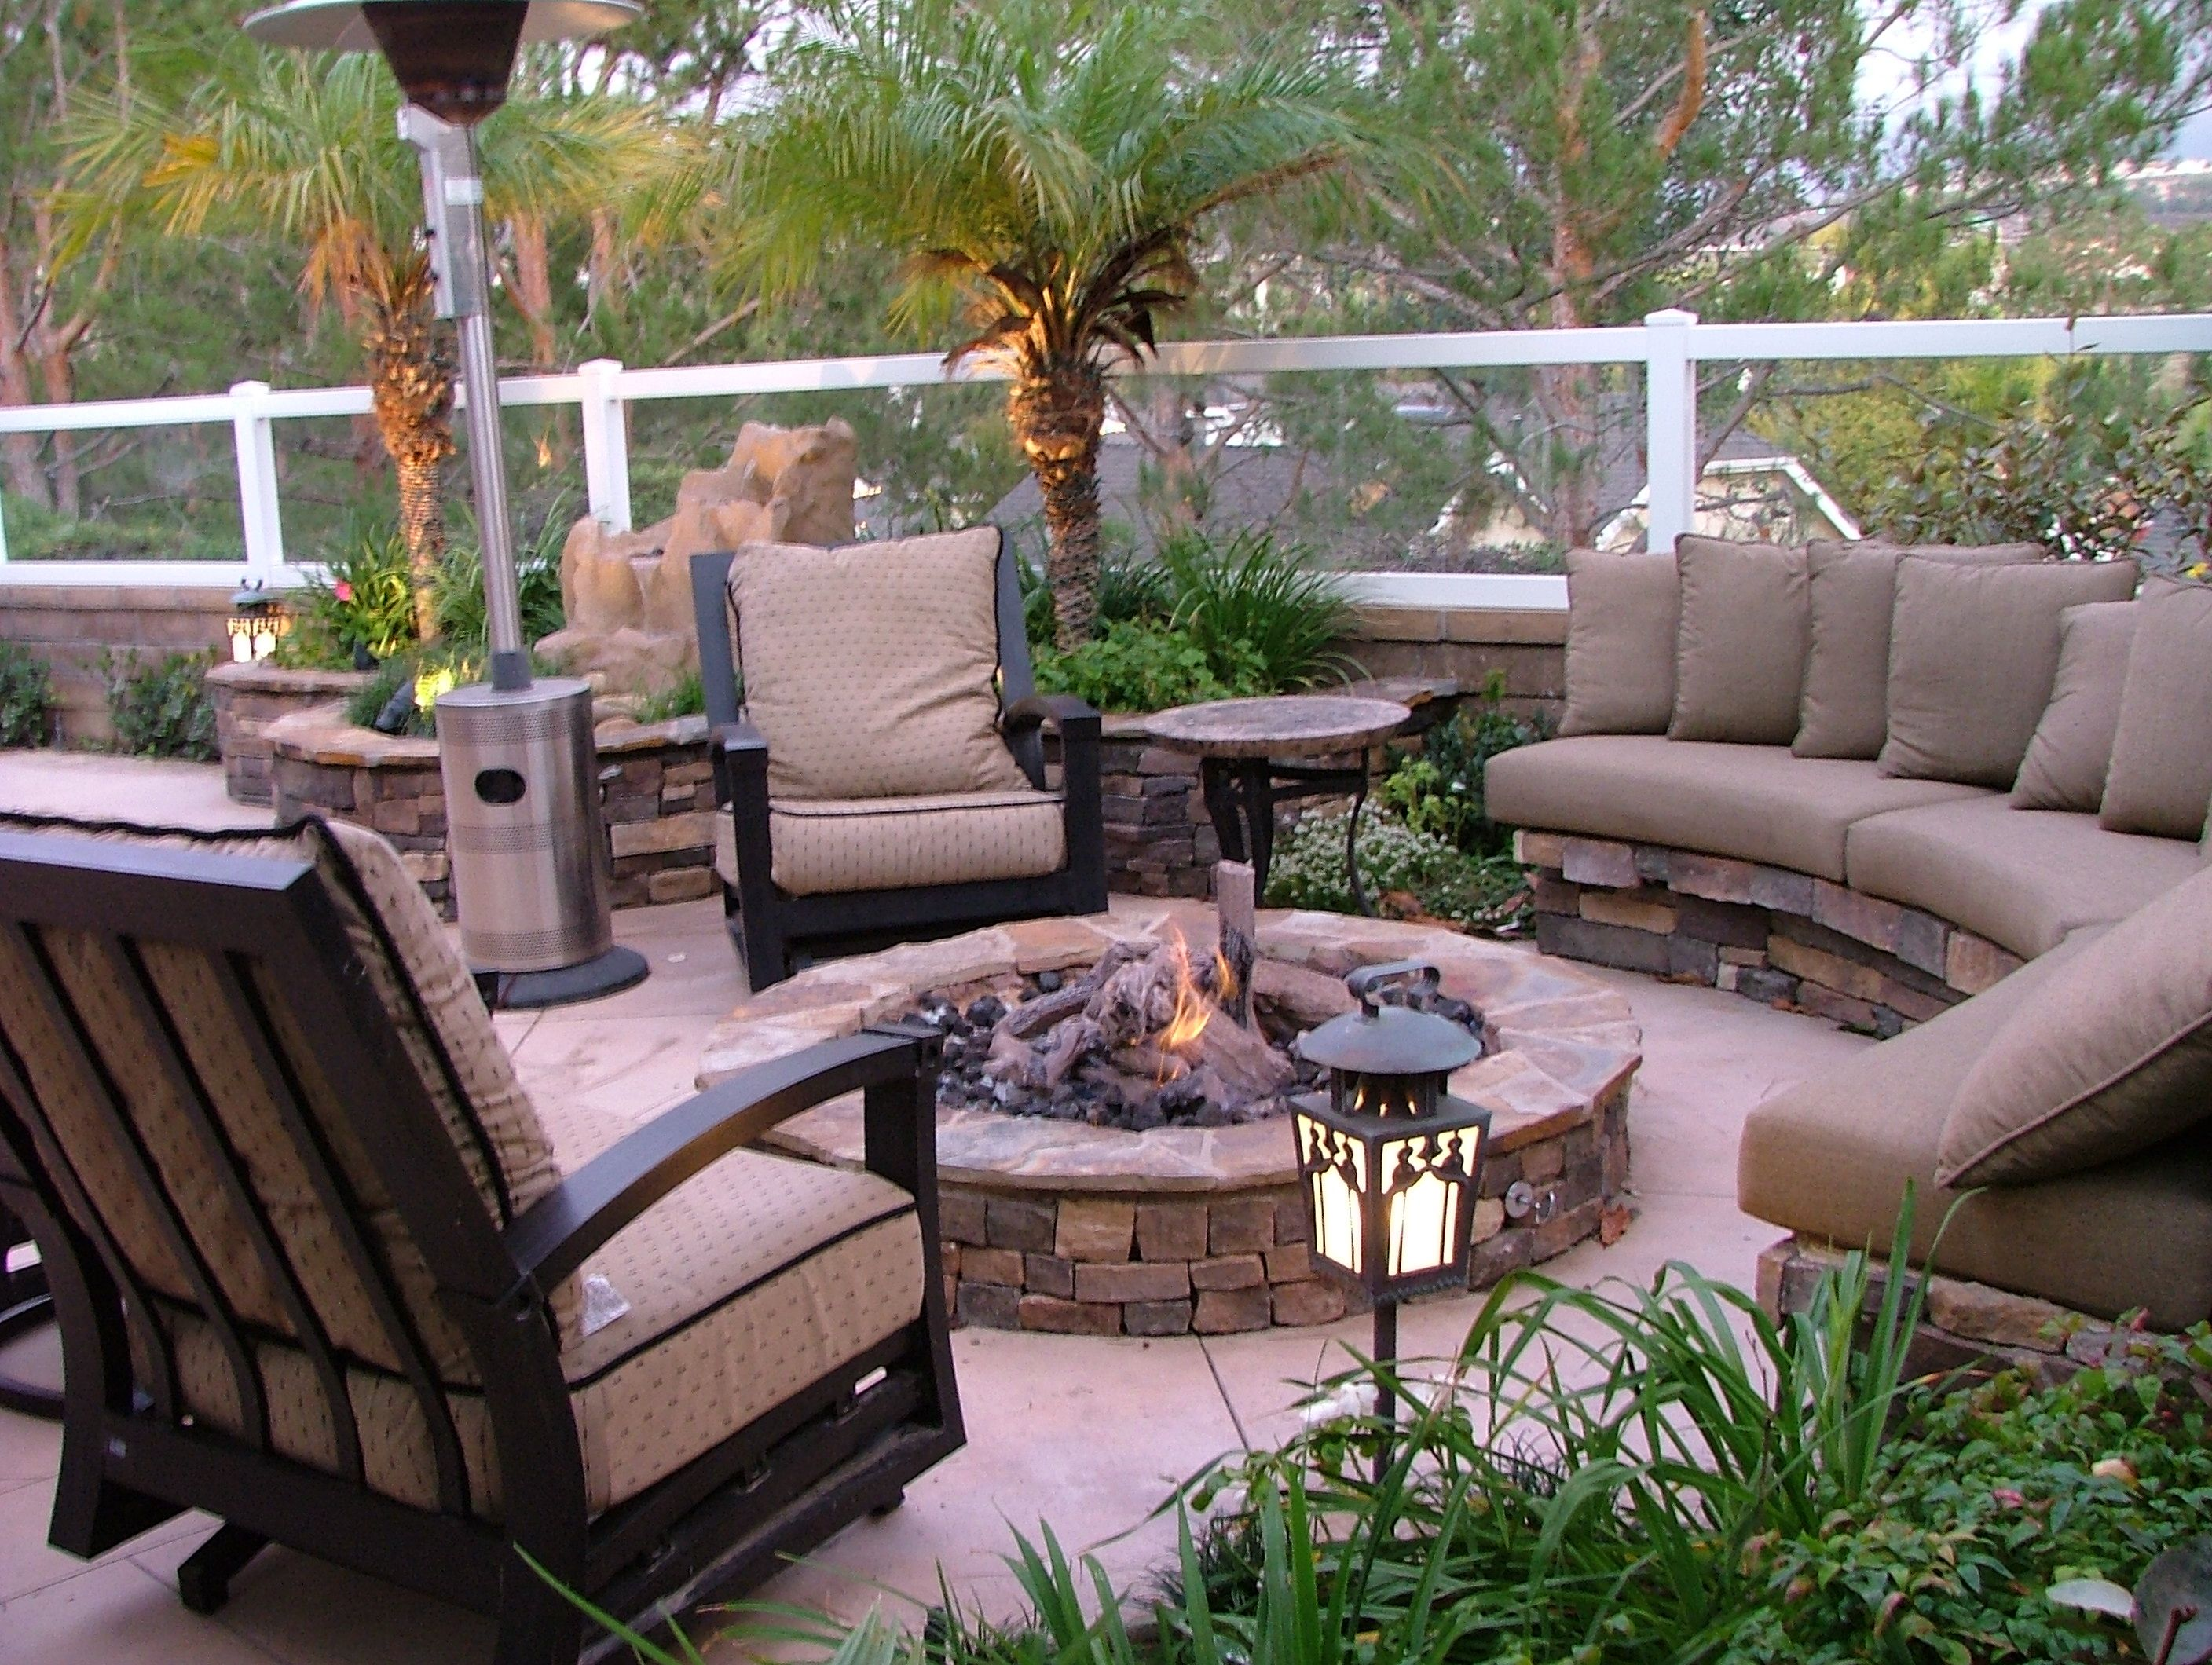 DIY landscaping | Outdoor Patio 2816x2120 Patio And Landscape Makeovers From The Desk Of ...